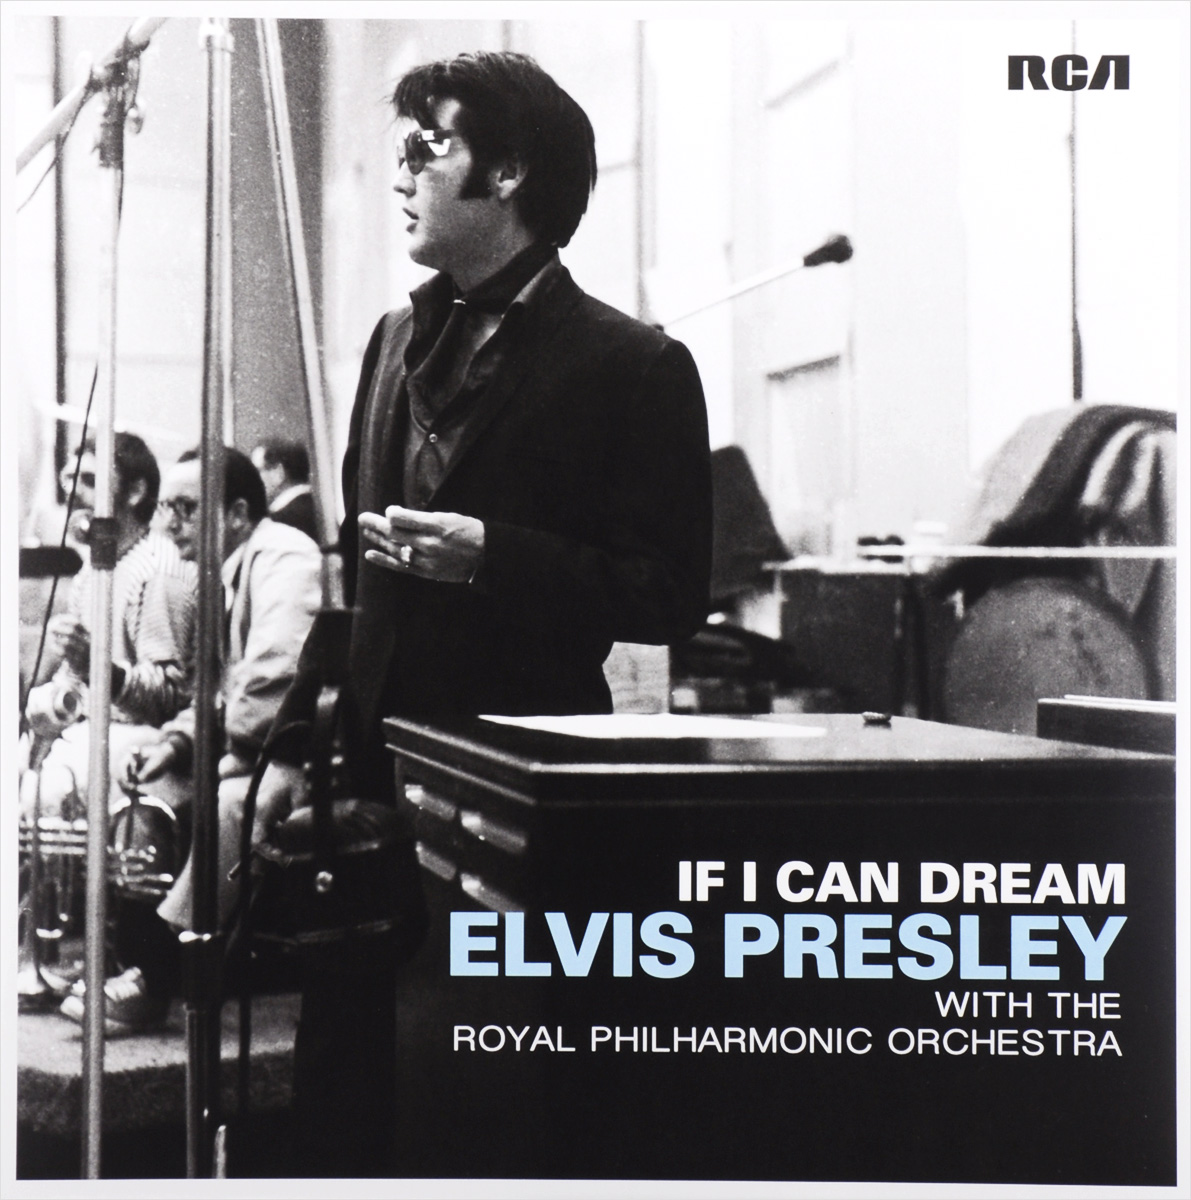 Элвис Пресли,The Royal Philharmonic Orchestra Elvis Presley With The Royal Philharmonic Orchestra. If I Can Dream (2 LP) elvis presley elvis presley royal philharmonic orchestra the wonder of you 2 lp cd